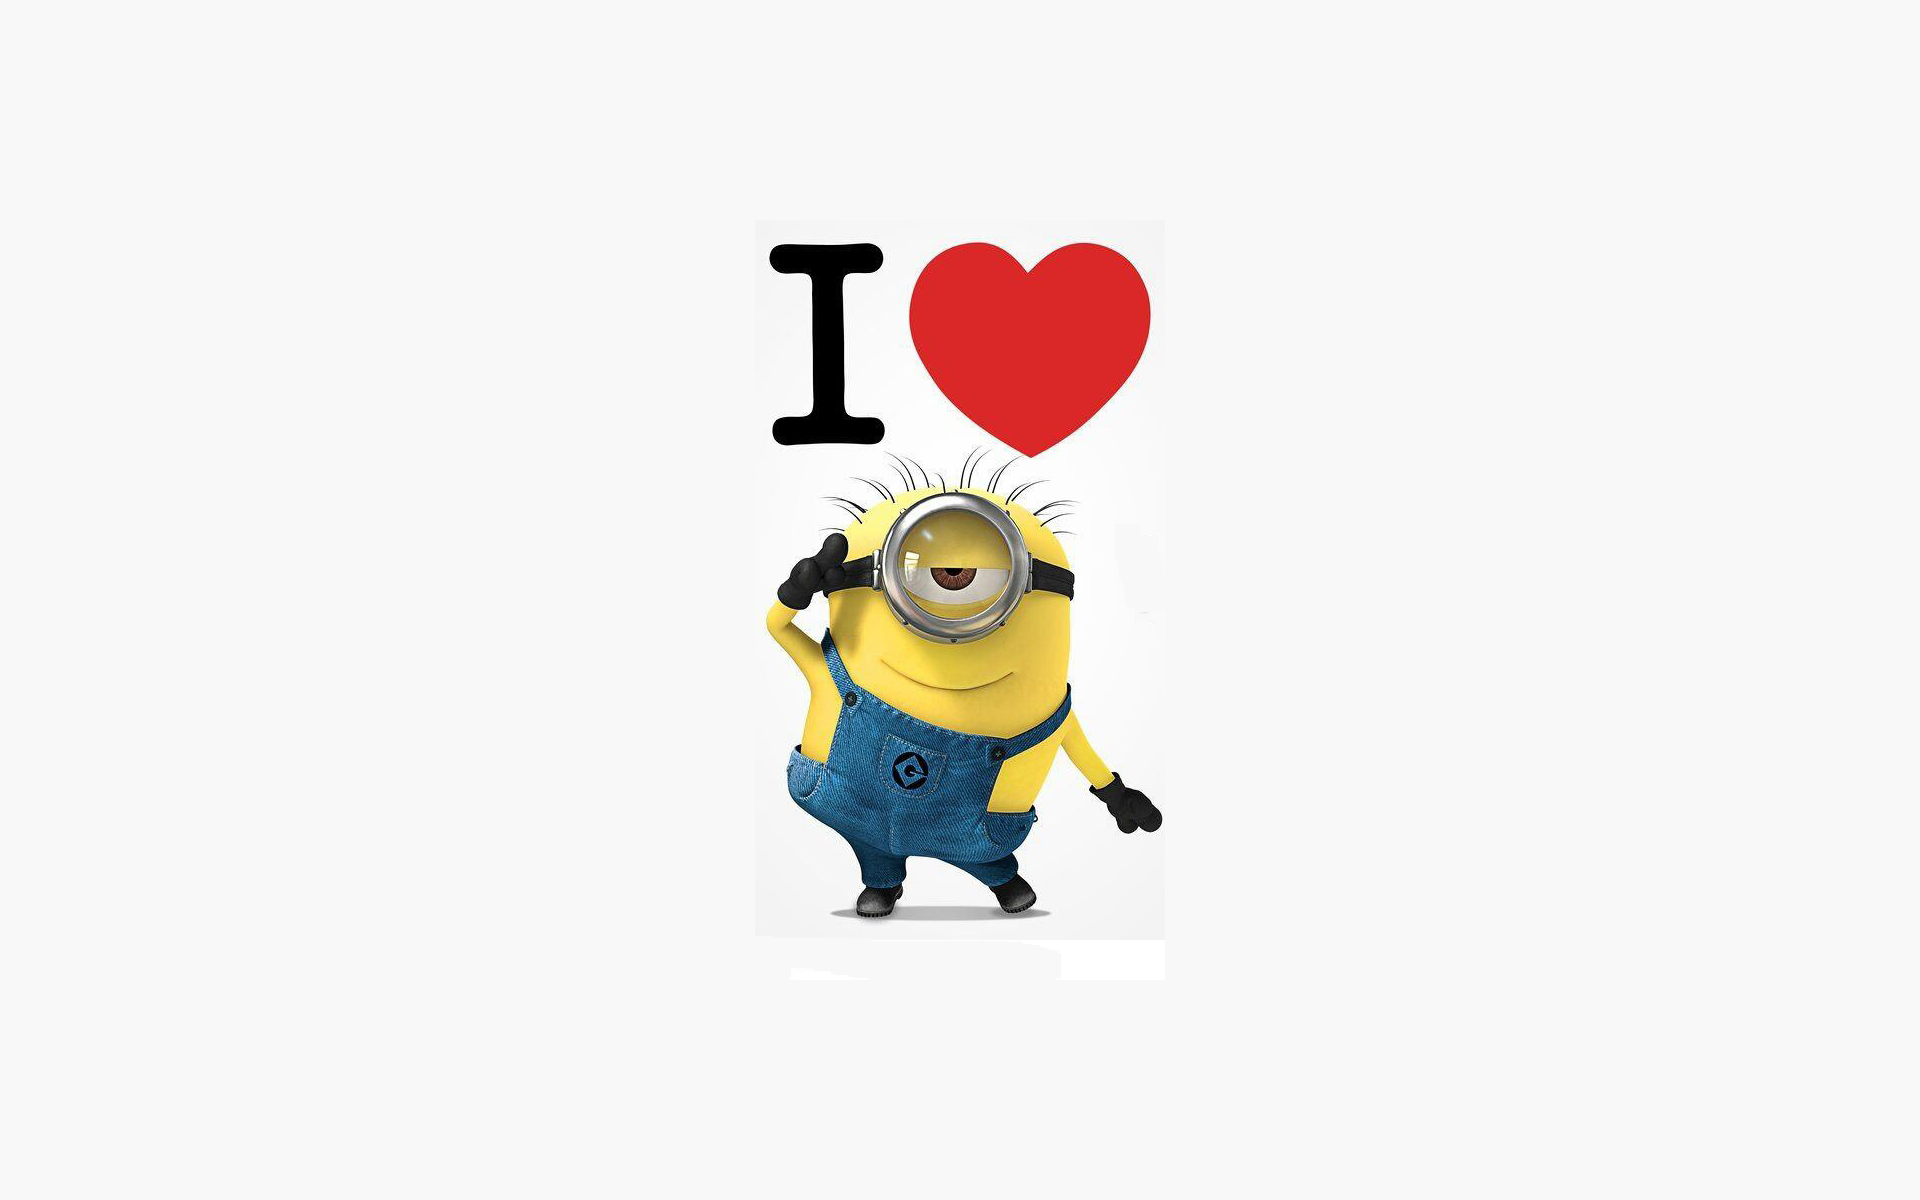 Despicable me wallpaper free download page 2 of 3 wallpaper wallpaper despicable me images hd pic wpe0010359 voltagebd Image collections